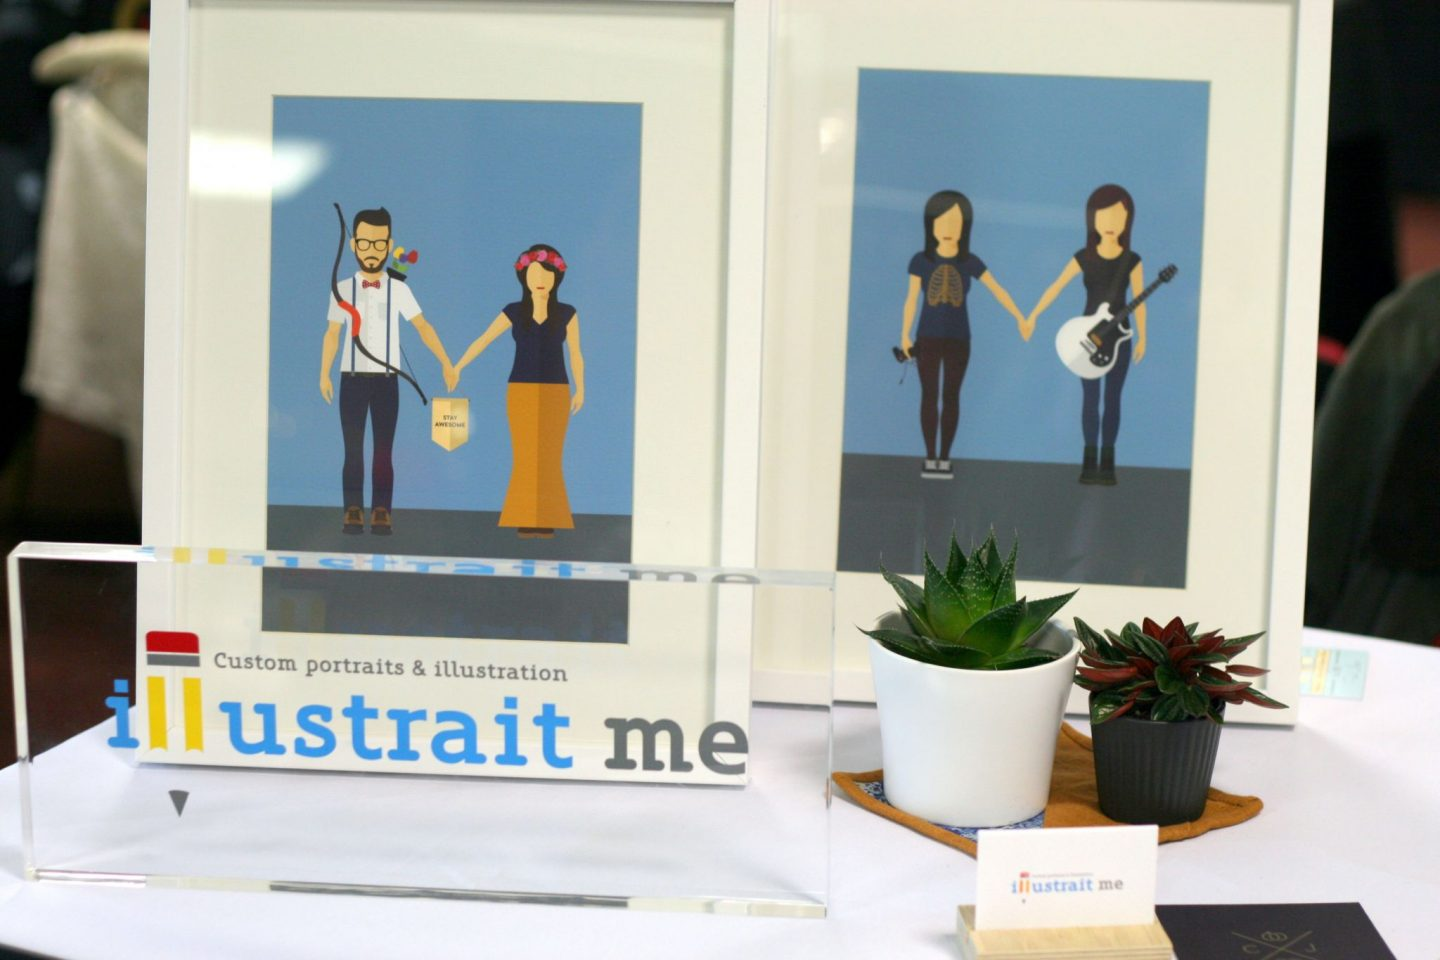 Illustrait Me invites and prints